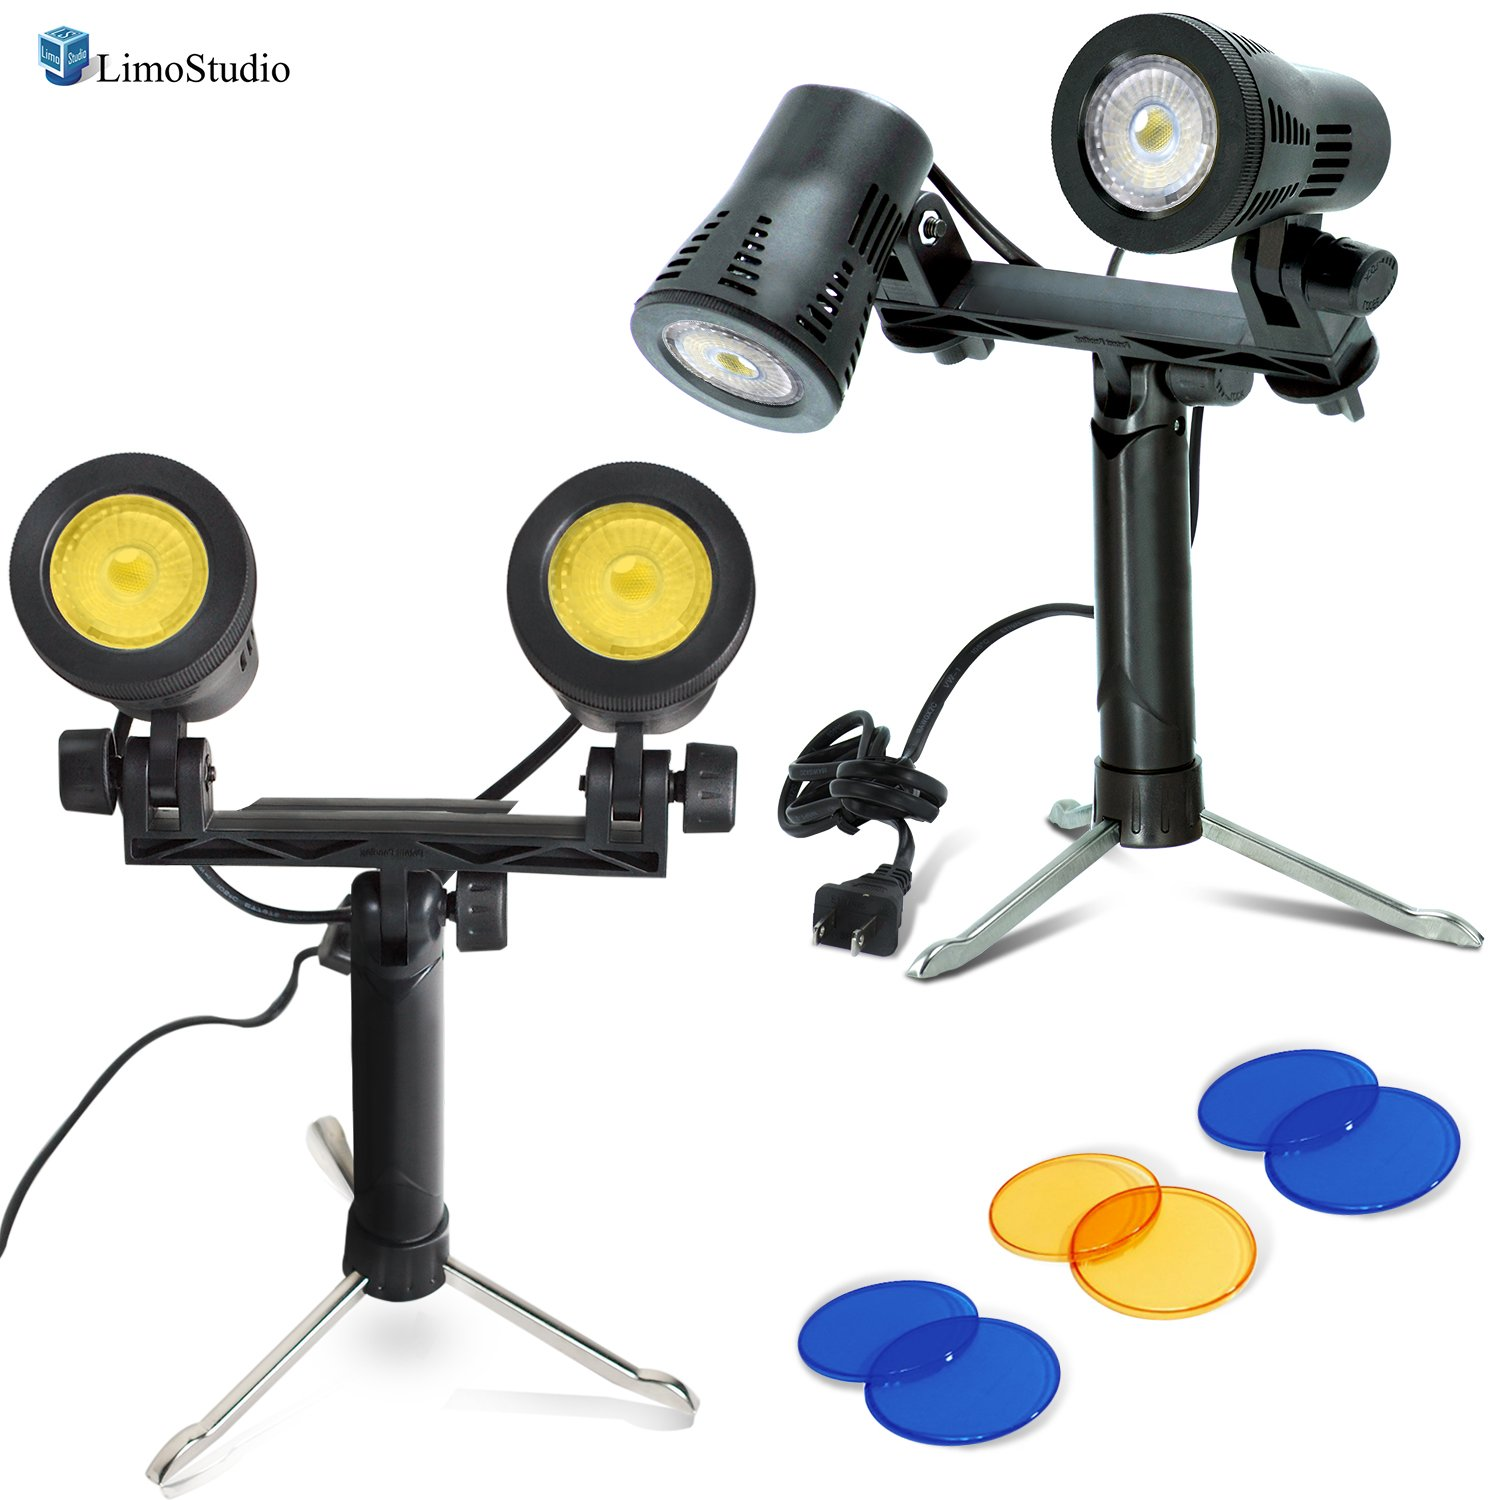 LimoStudio 2 sets Portable Continuous Double Head LED Light, Table Top Mini Lighting Kit with Blue and Yellow Color Gel Filters, Photography Video Studio Set, AGG2635